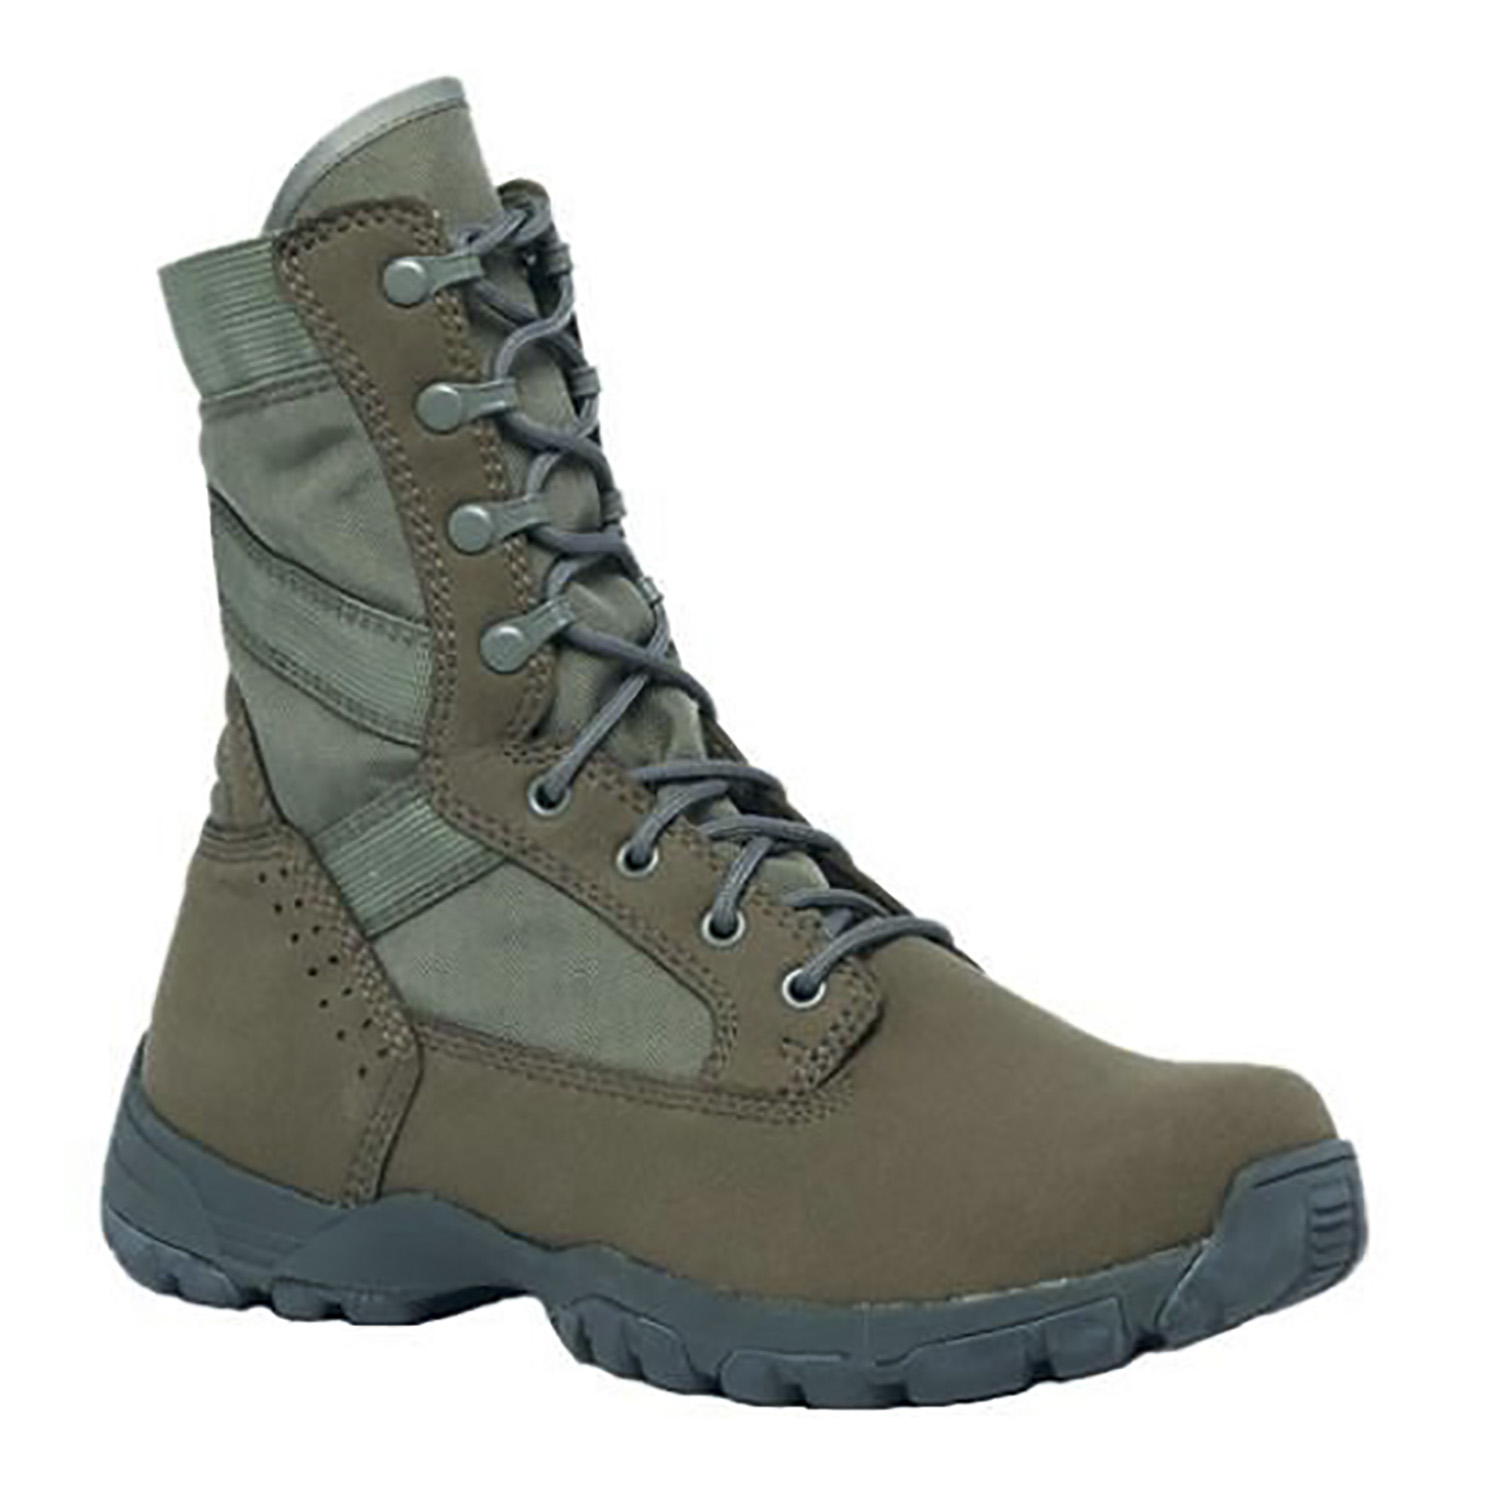 1cffeb35eee Sage Flyweight Boots Ultra Lightweight Hot Weather